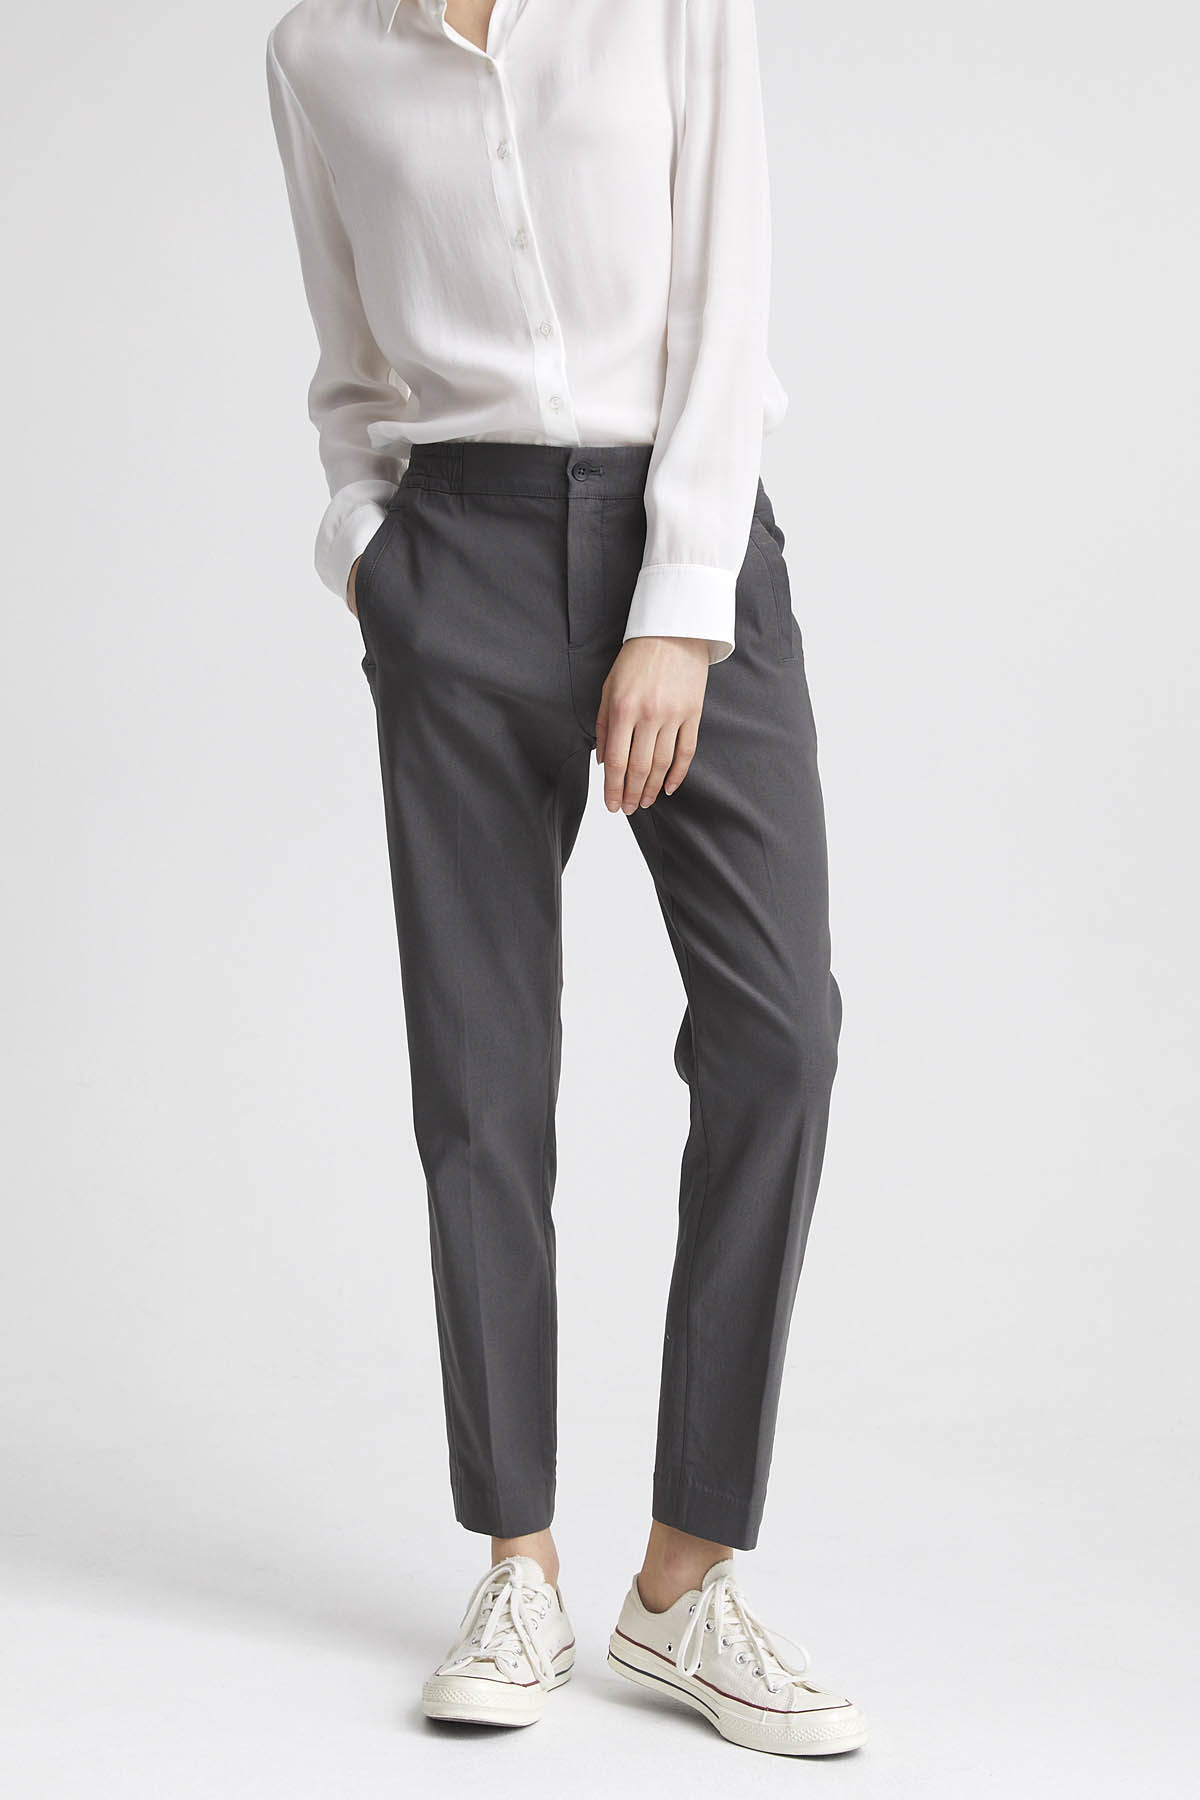 PRESTON PANT Tailored - Straight Fit